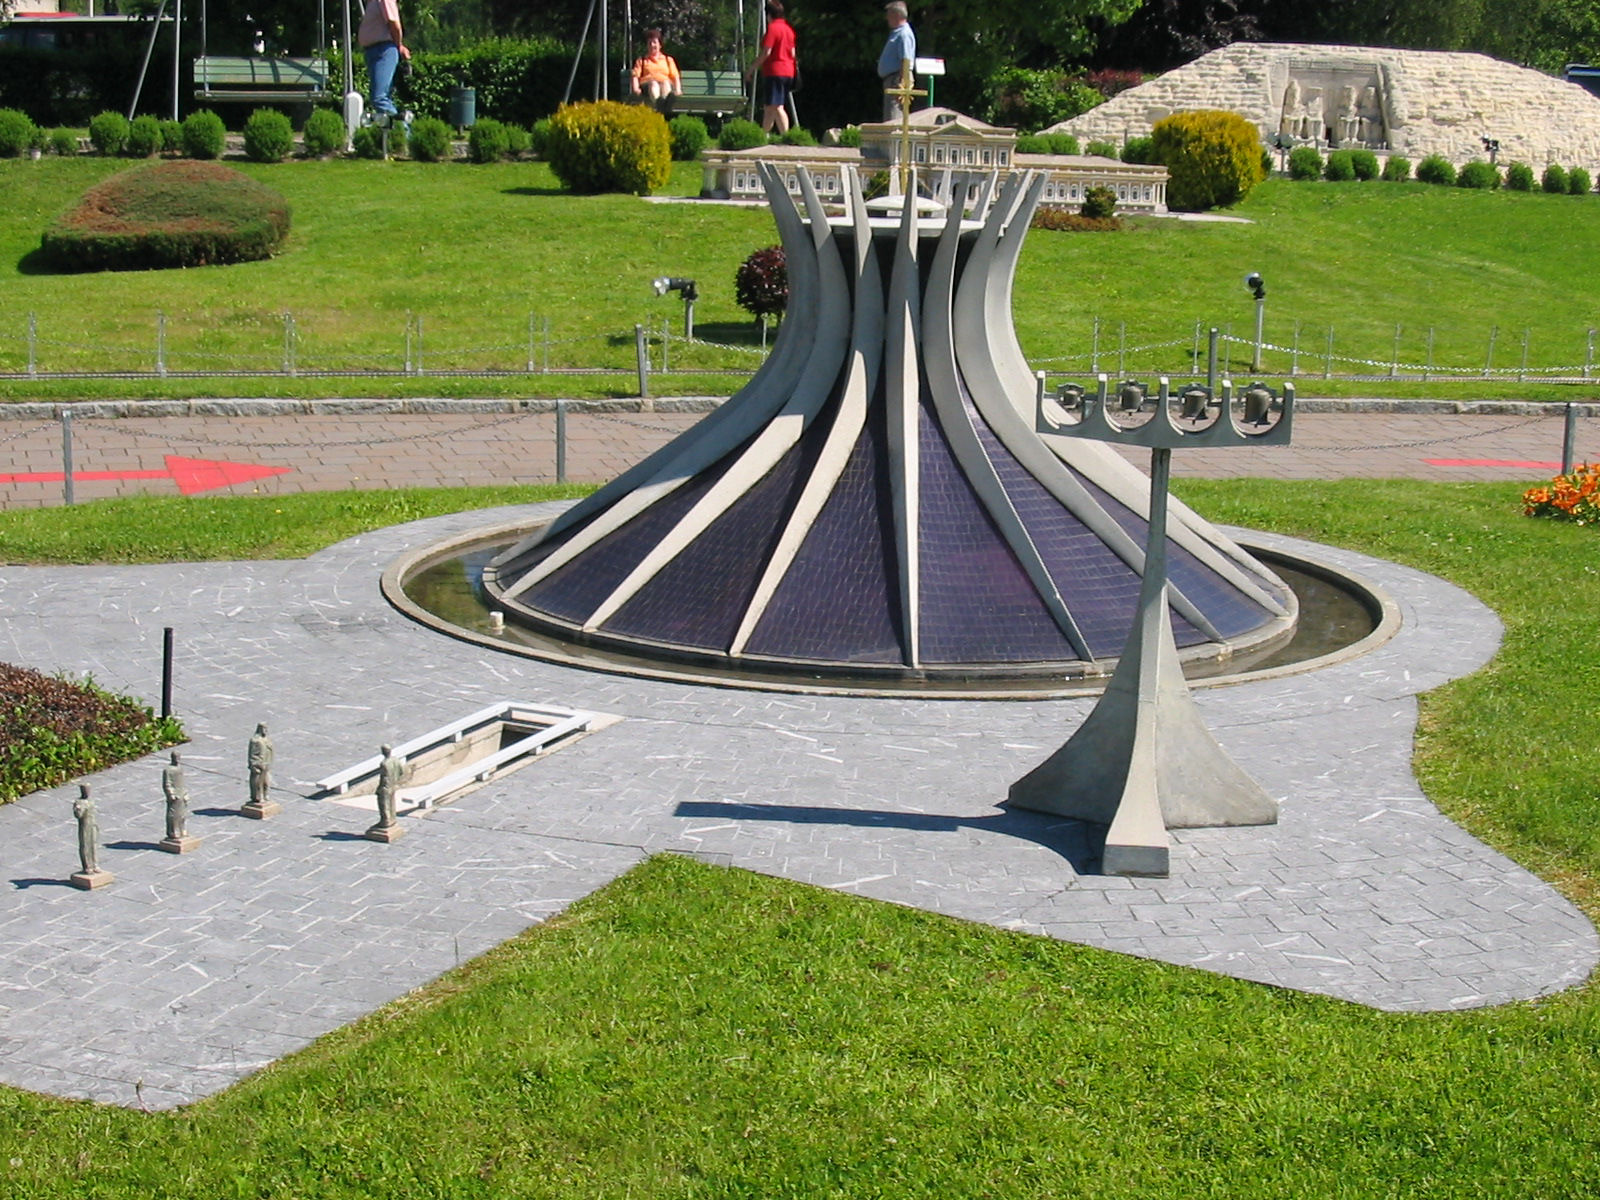 Cathedral of Brasilia (Brazil) displayed at the Minimundus miniature park in Klagenfurt, Austria